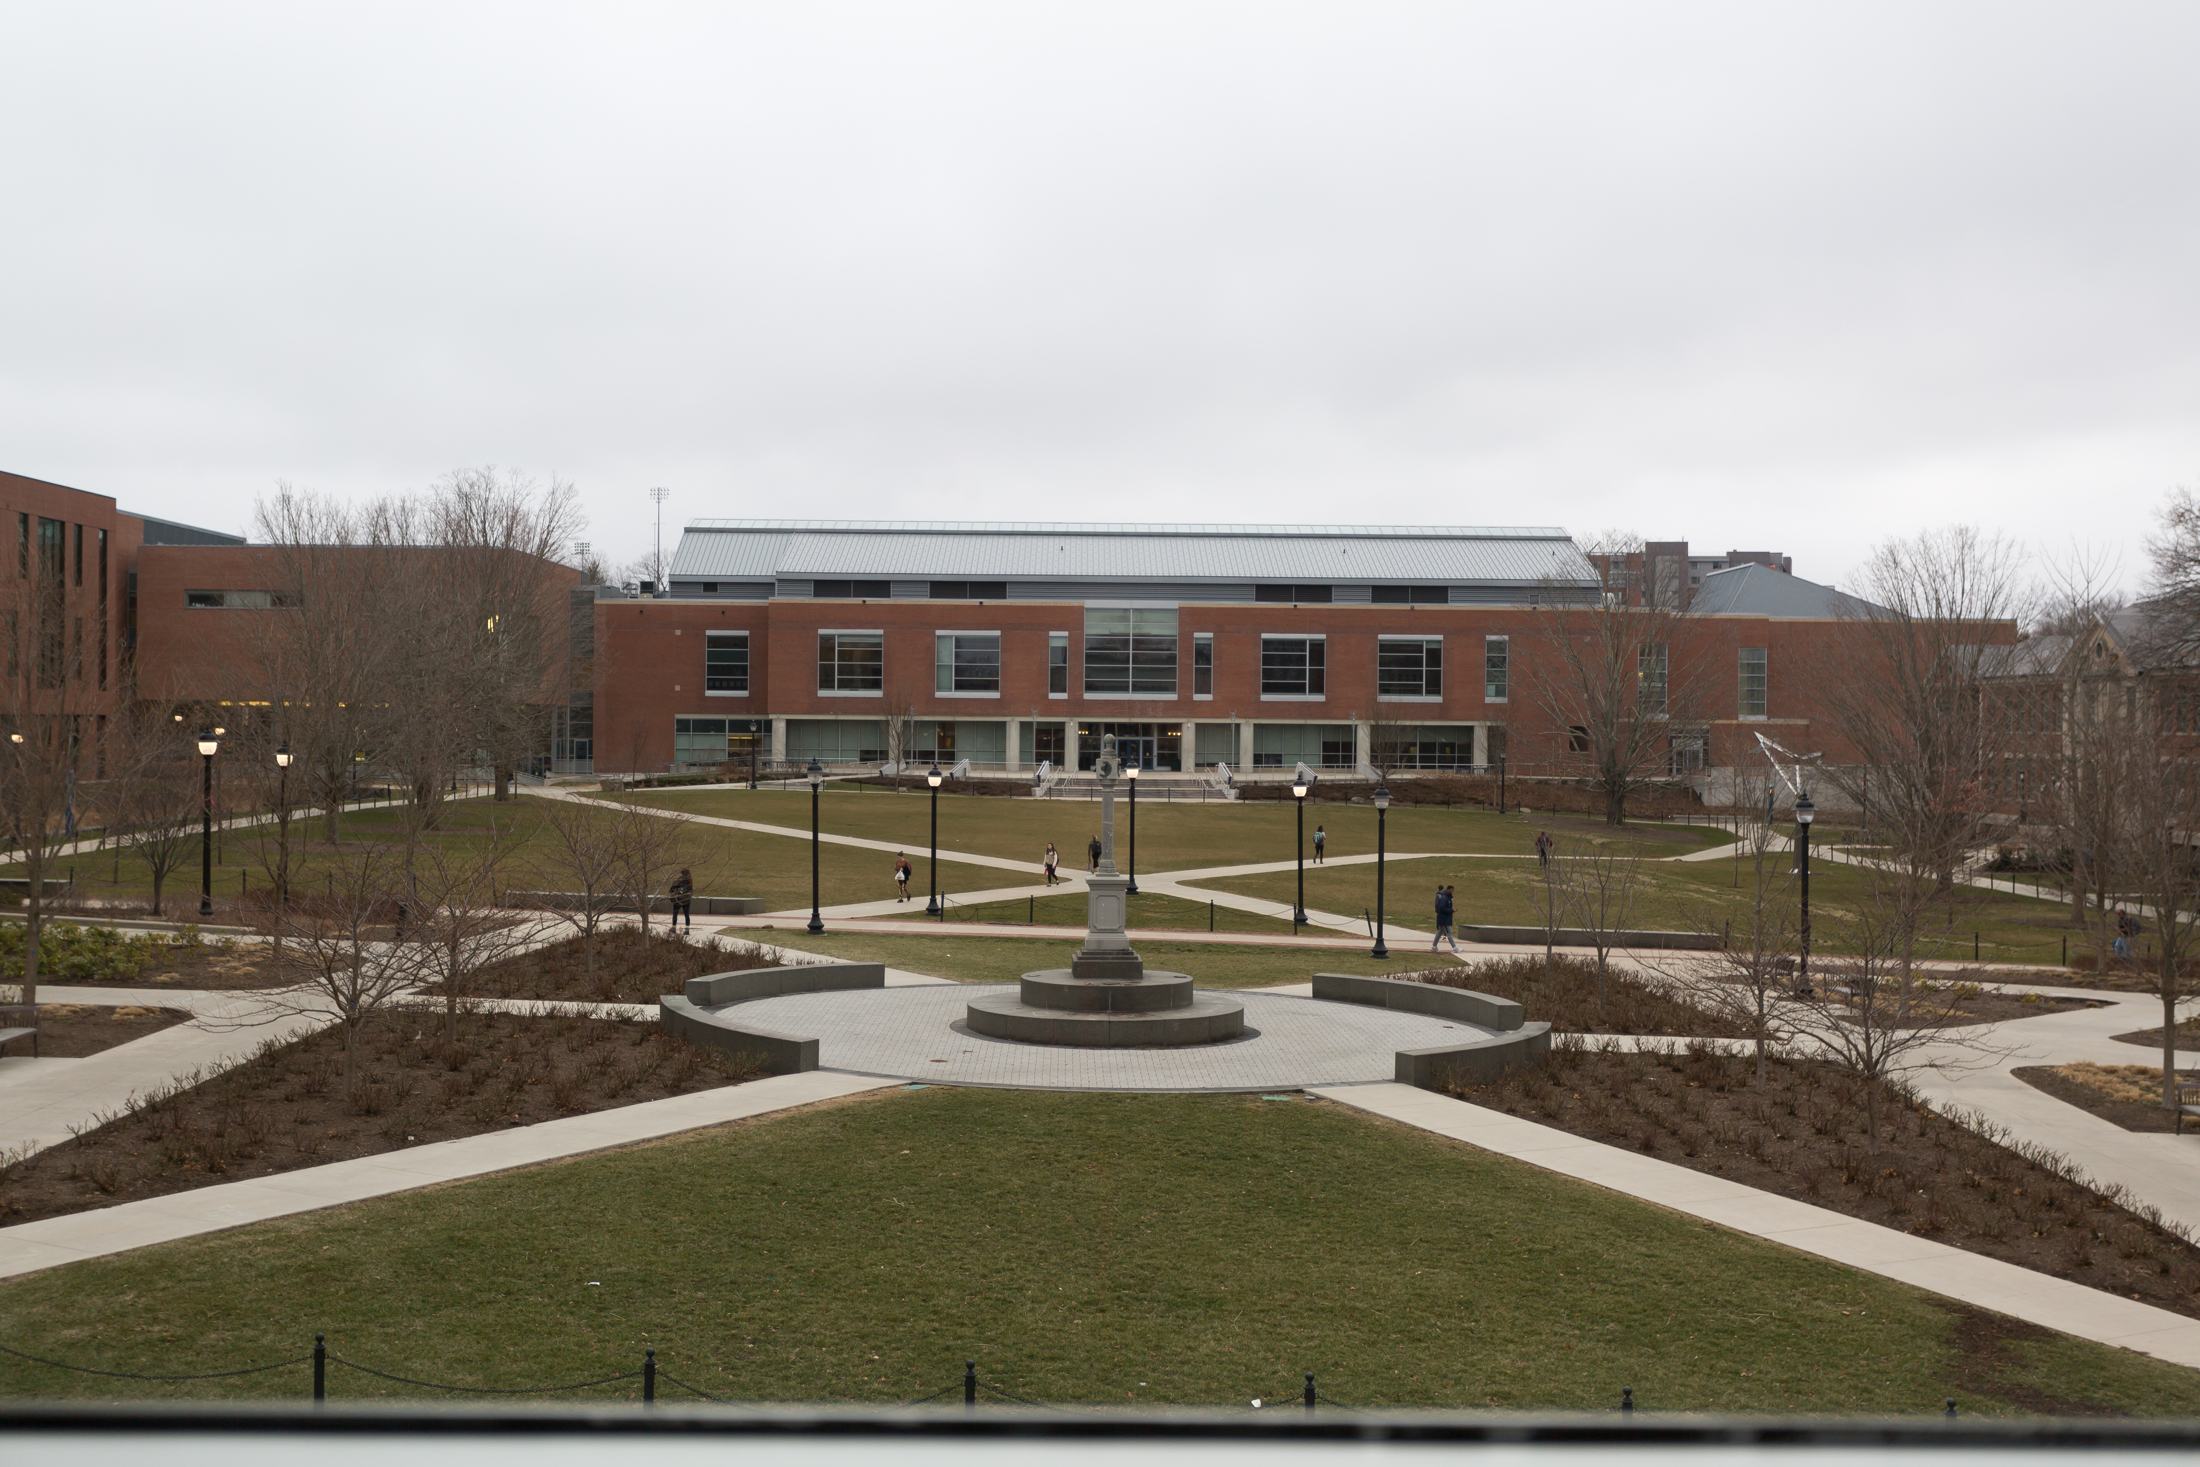 UConn has more than 3,300 international students currently enrolled, and a total of 87 that are affected by the executive order, according to UConn Today. All international students and scholars have been advised not to leave the country at the moment. (Tyler Benton/The Daily Campus)